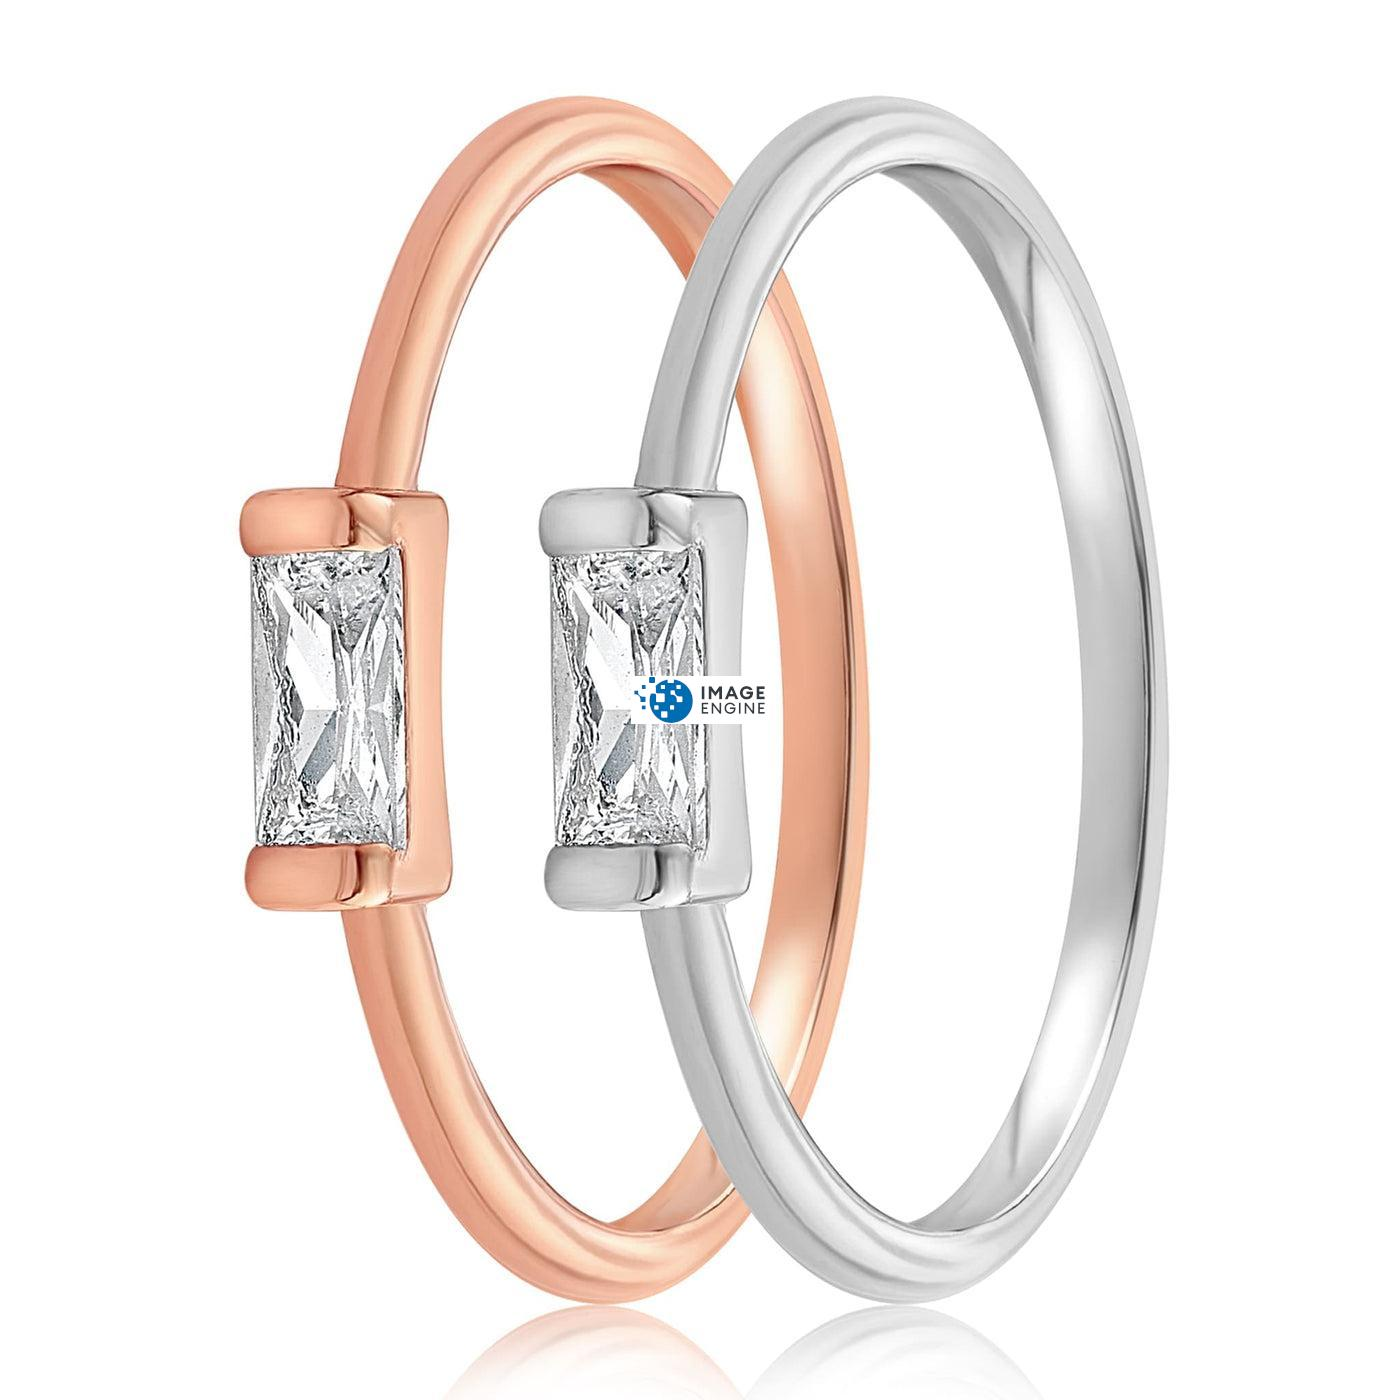 Moonie Glass Geometric Ring - Side by Side - 925 Sterling Silver and 18K Rose Gold Vermeil